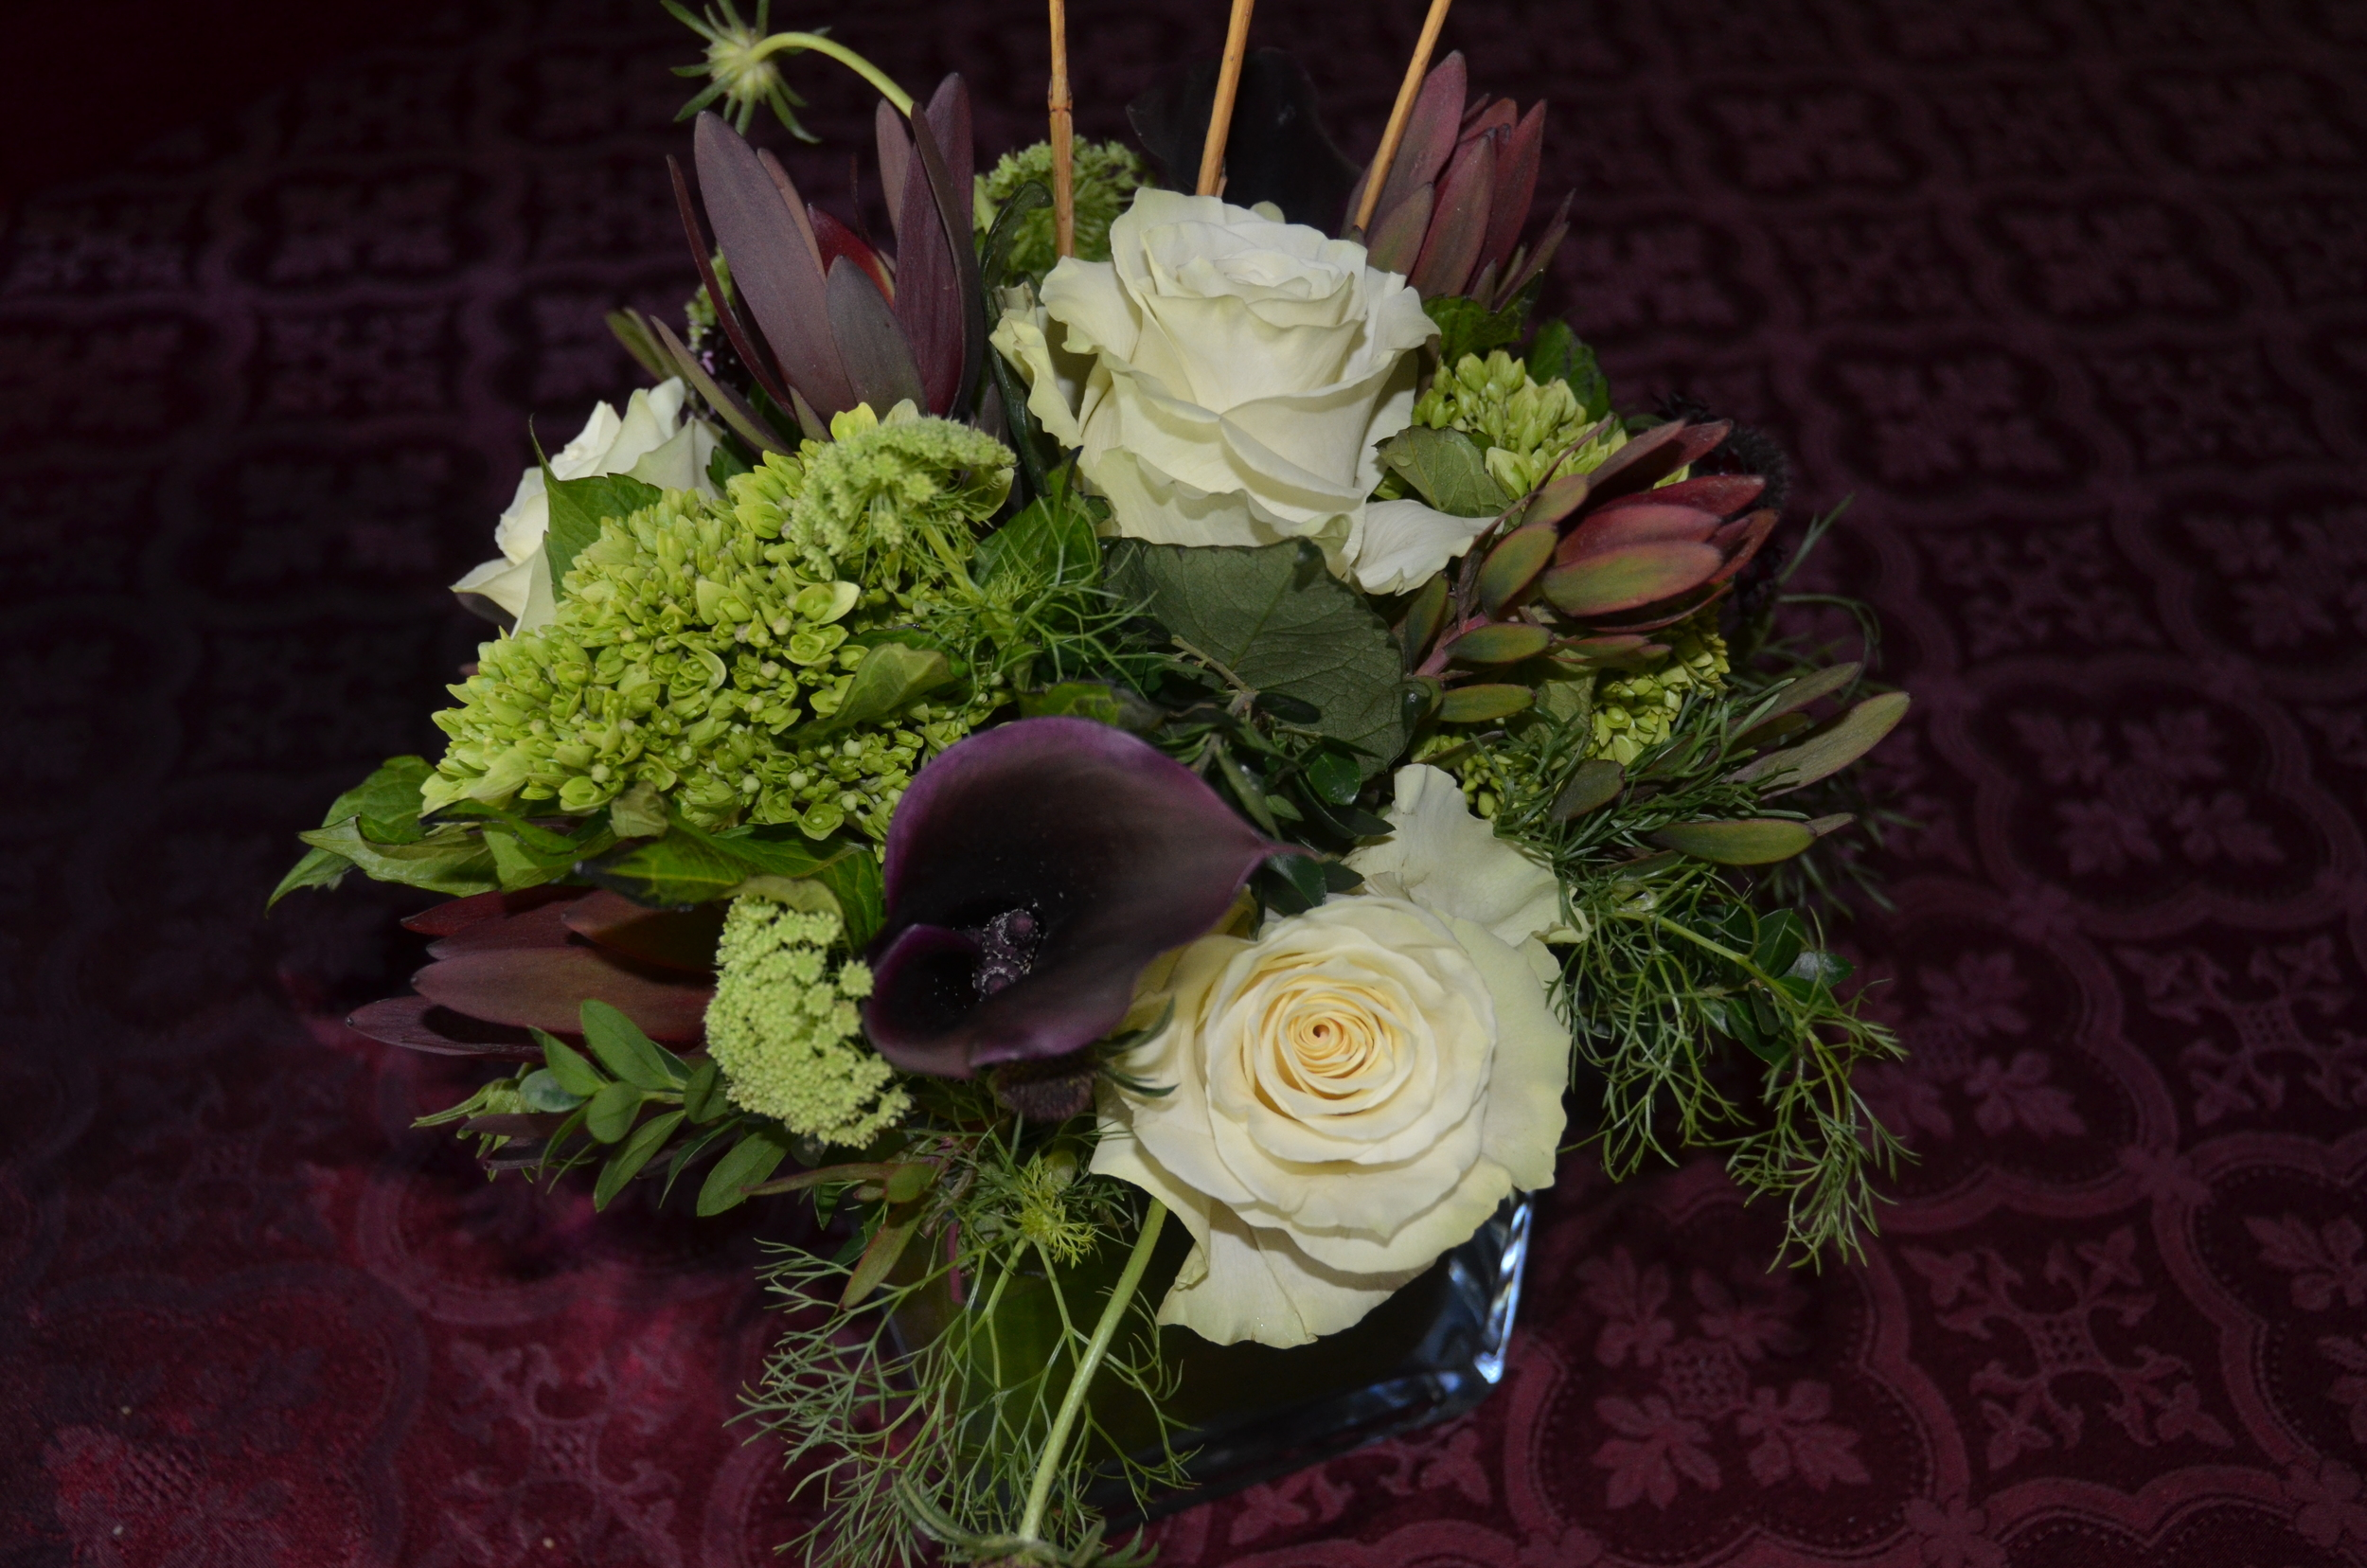 Add elegance to your table!  Contains: Mondial Rose, Calla, Leucadendron, Scabiosa, Queen Ann Lace